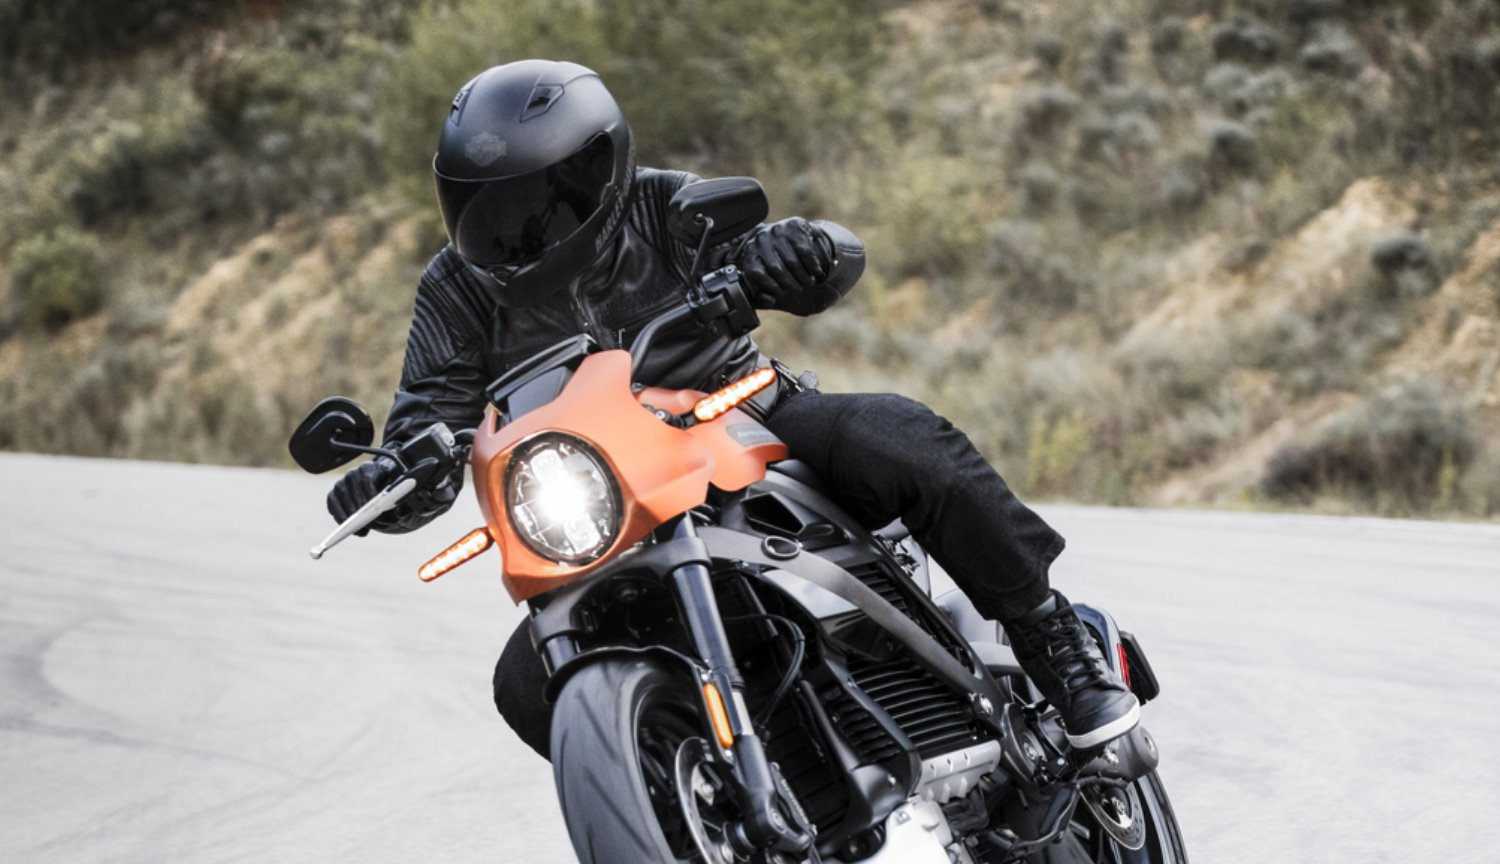 Electric Harley-Davidson motorcycle was more powerful than expected